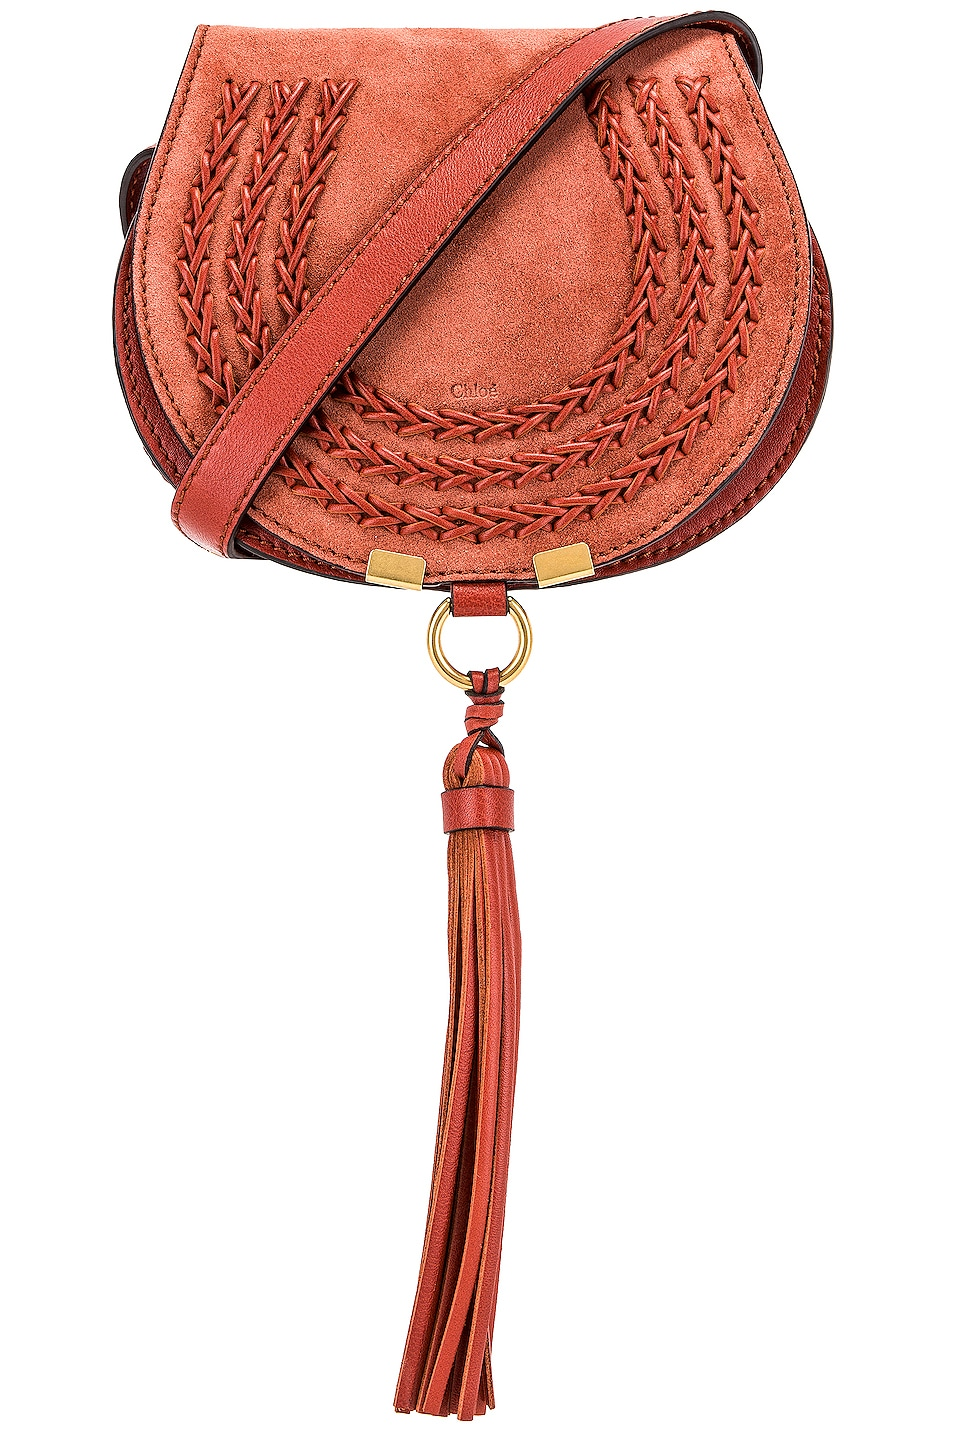 Image 1 of Chloe Small Leather Braid Marcie Satchel in Terracotta Red